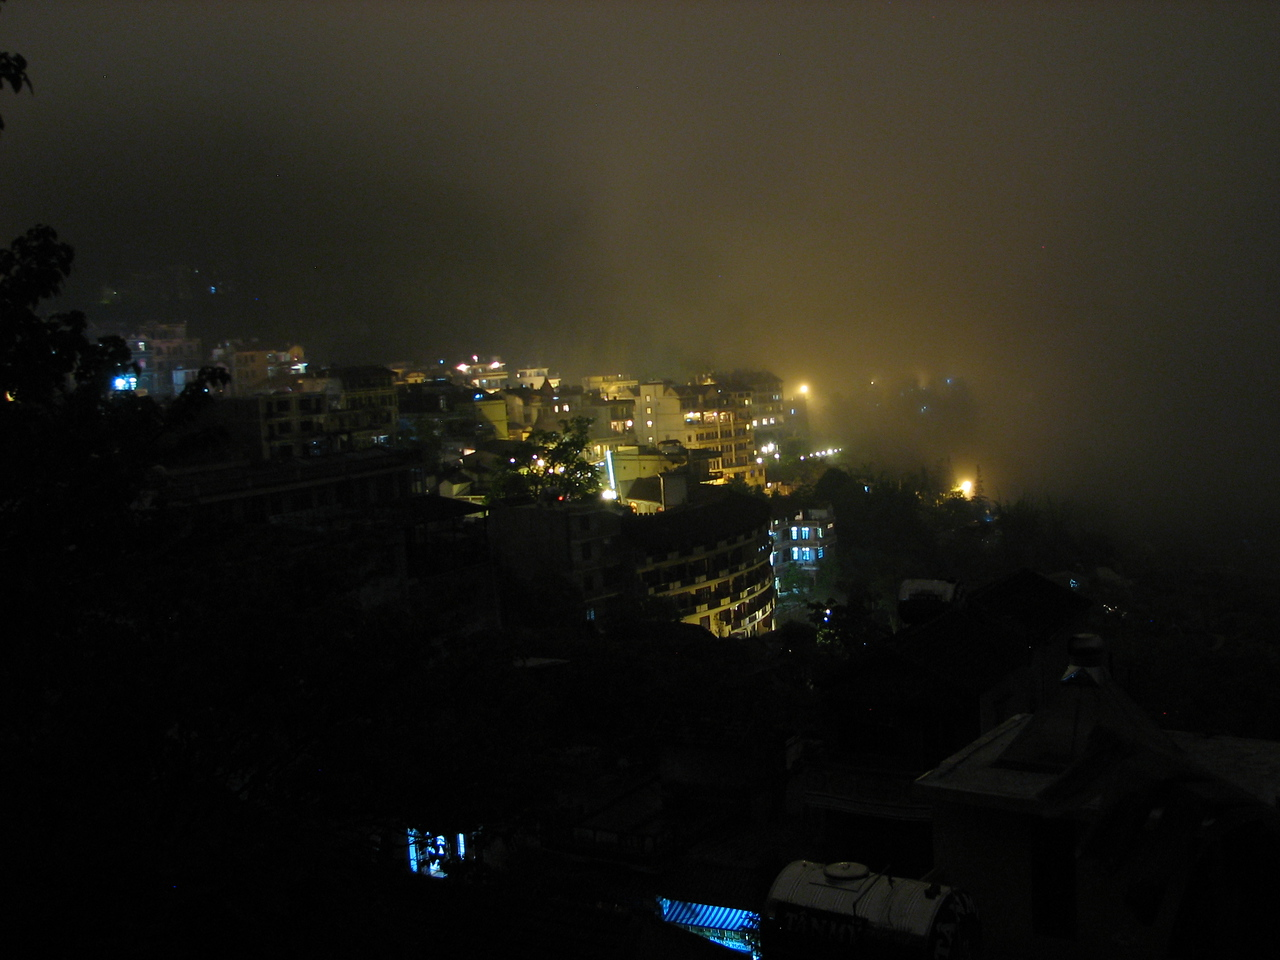 Sapa at night from our hotel